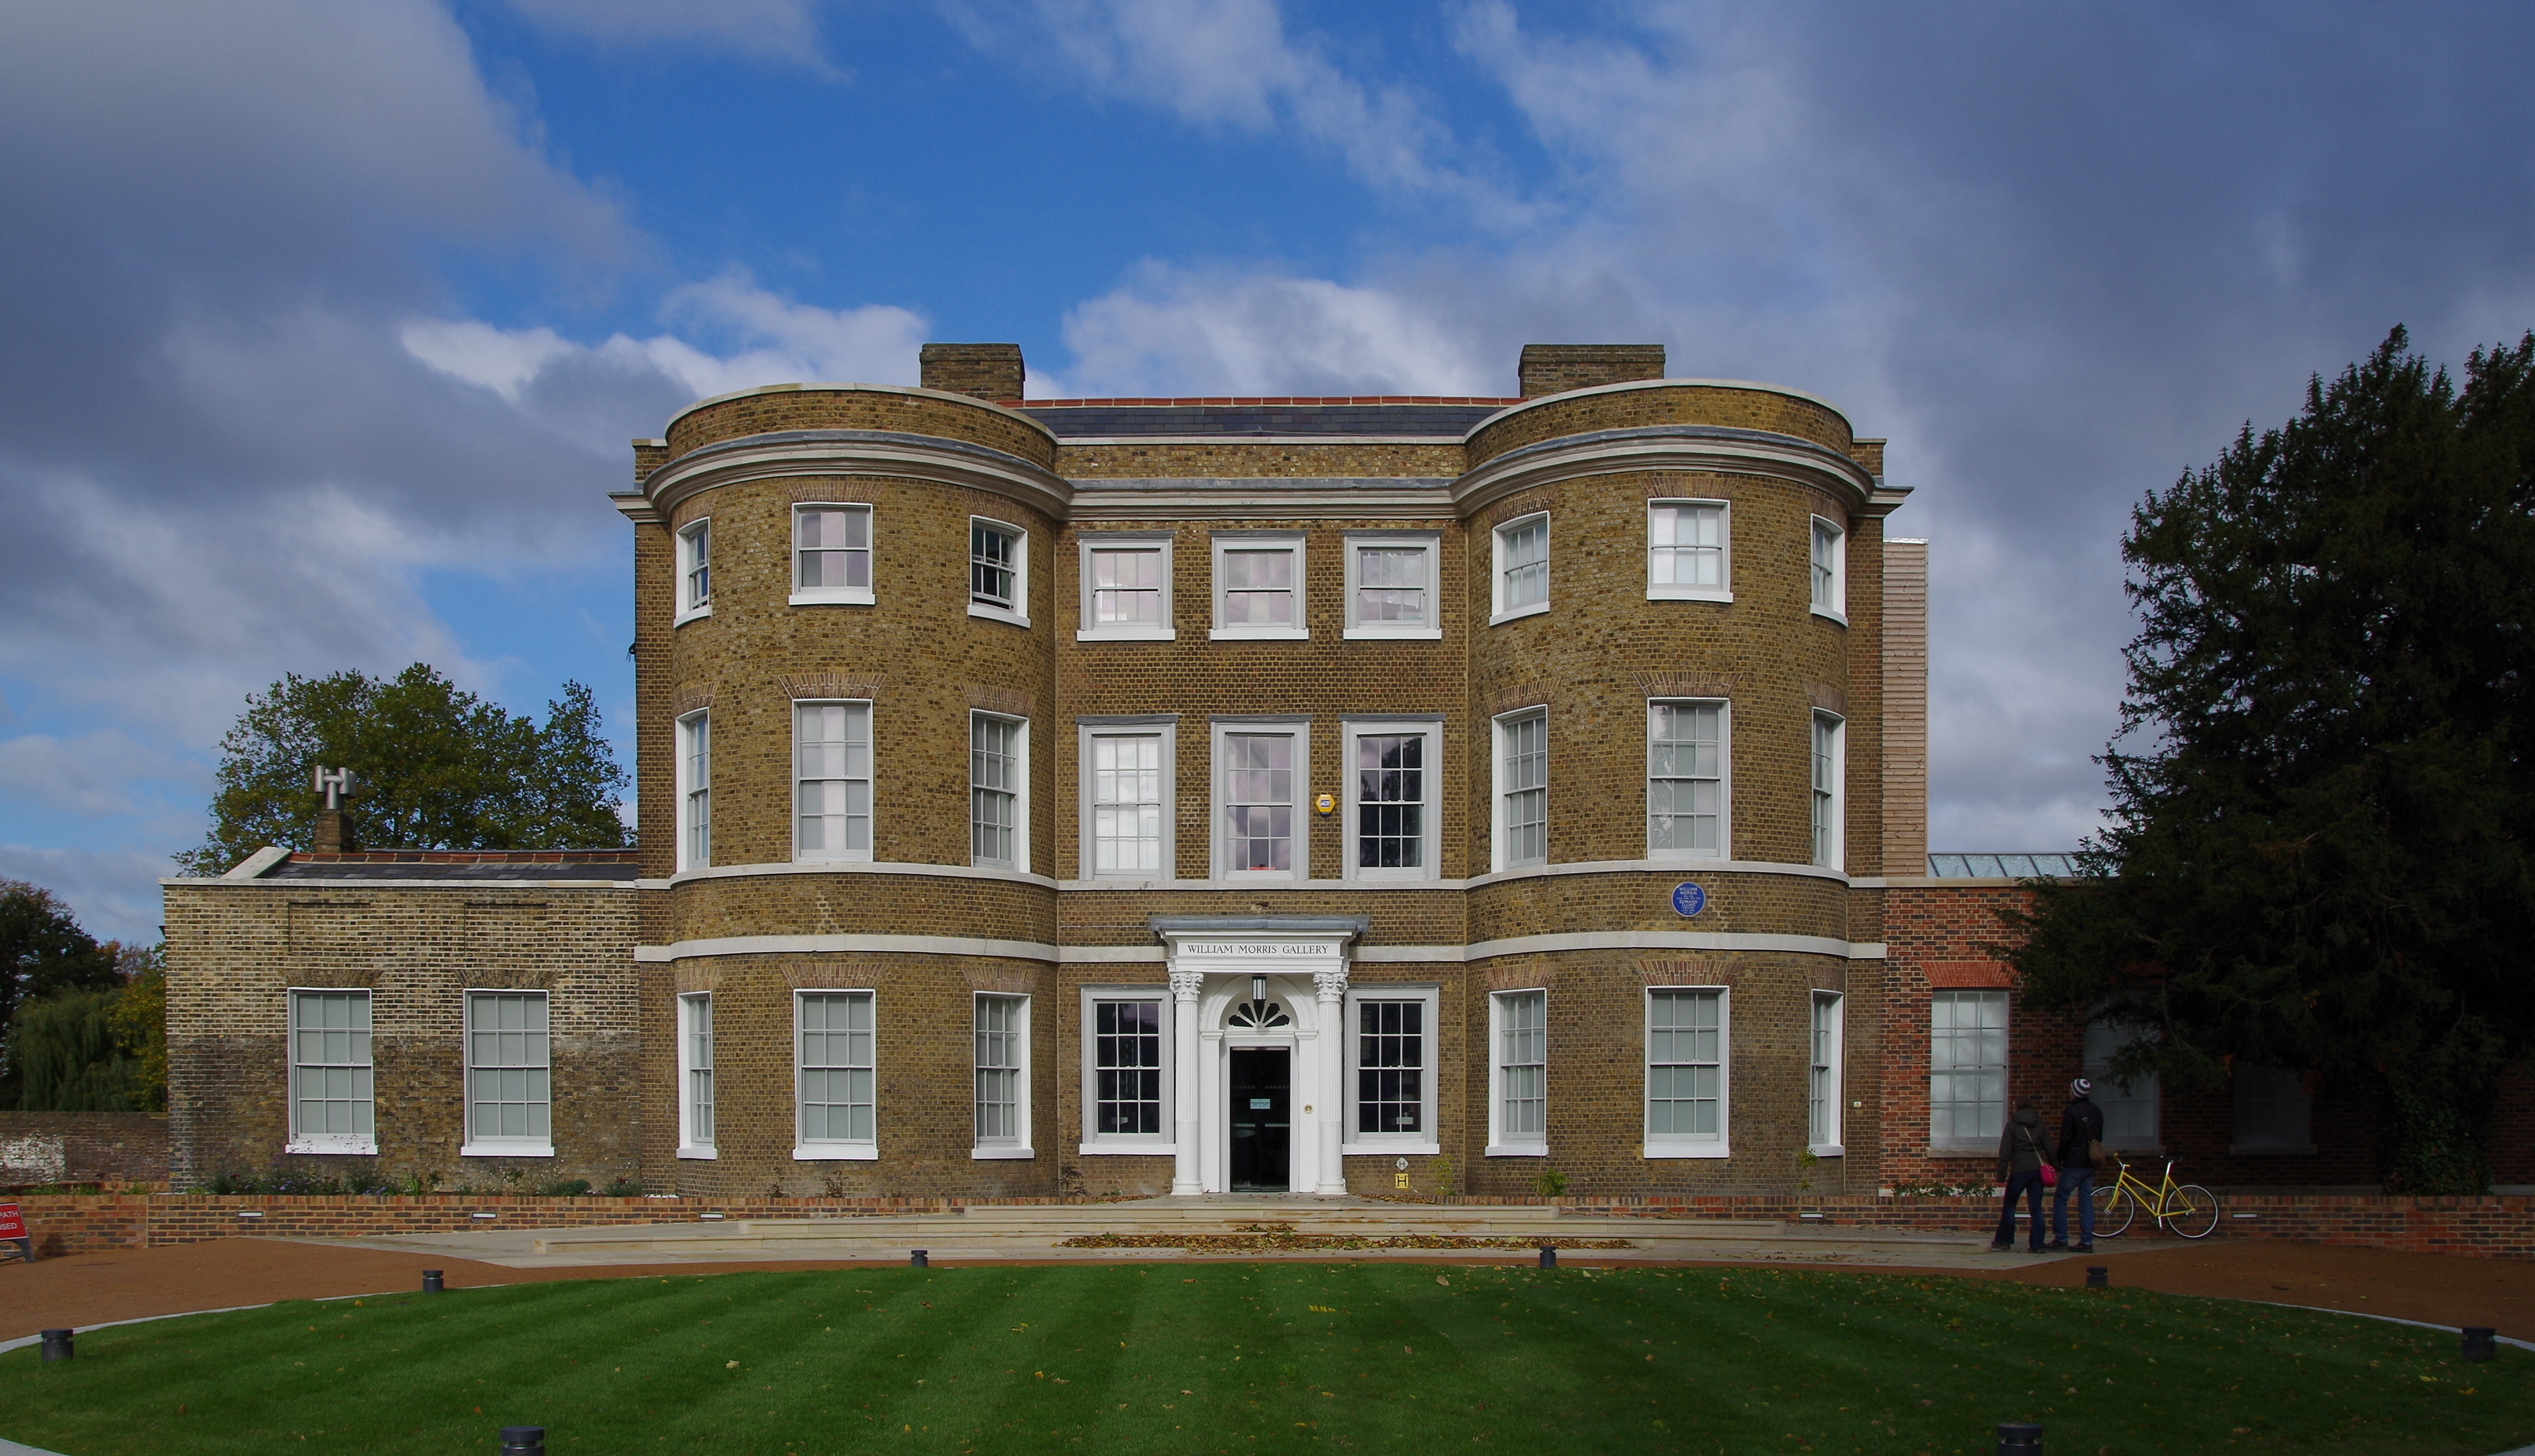 Astonishing William Morris Gallery Wikiwand Largest Home Design Picture Inspirations Pitcheantrous